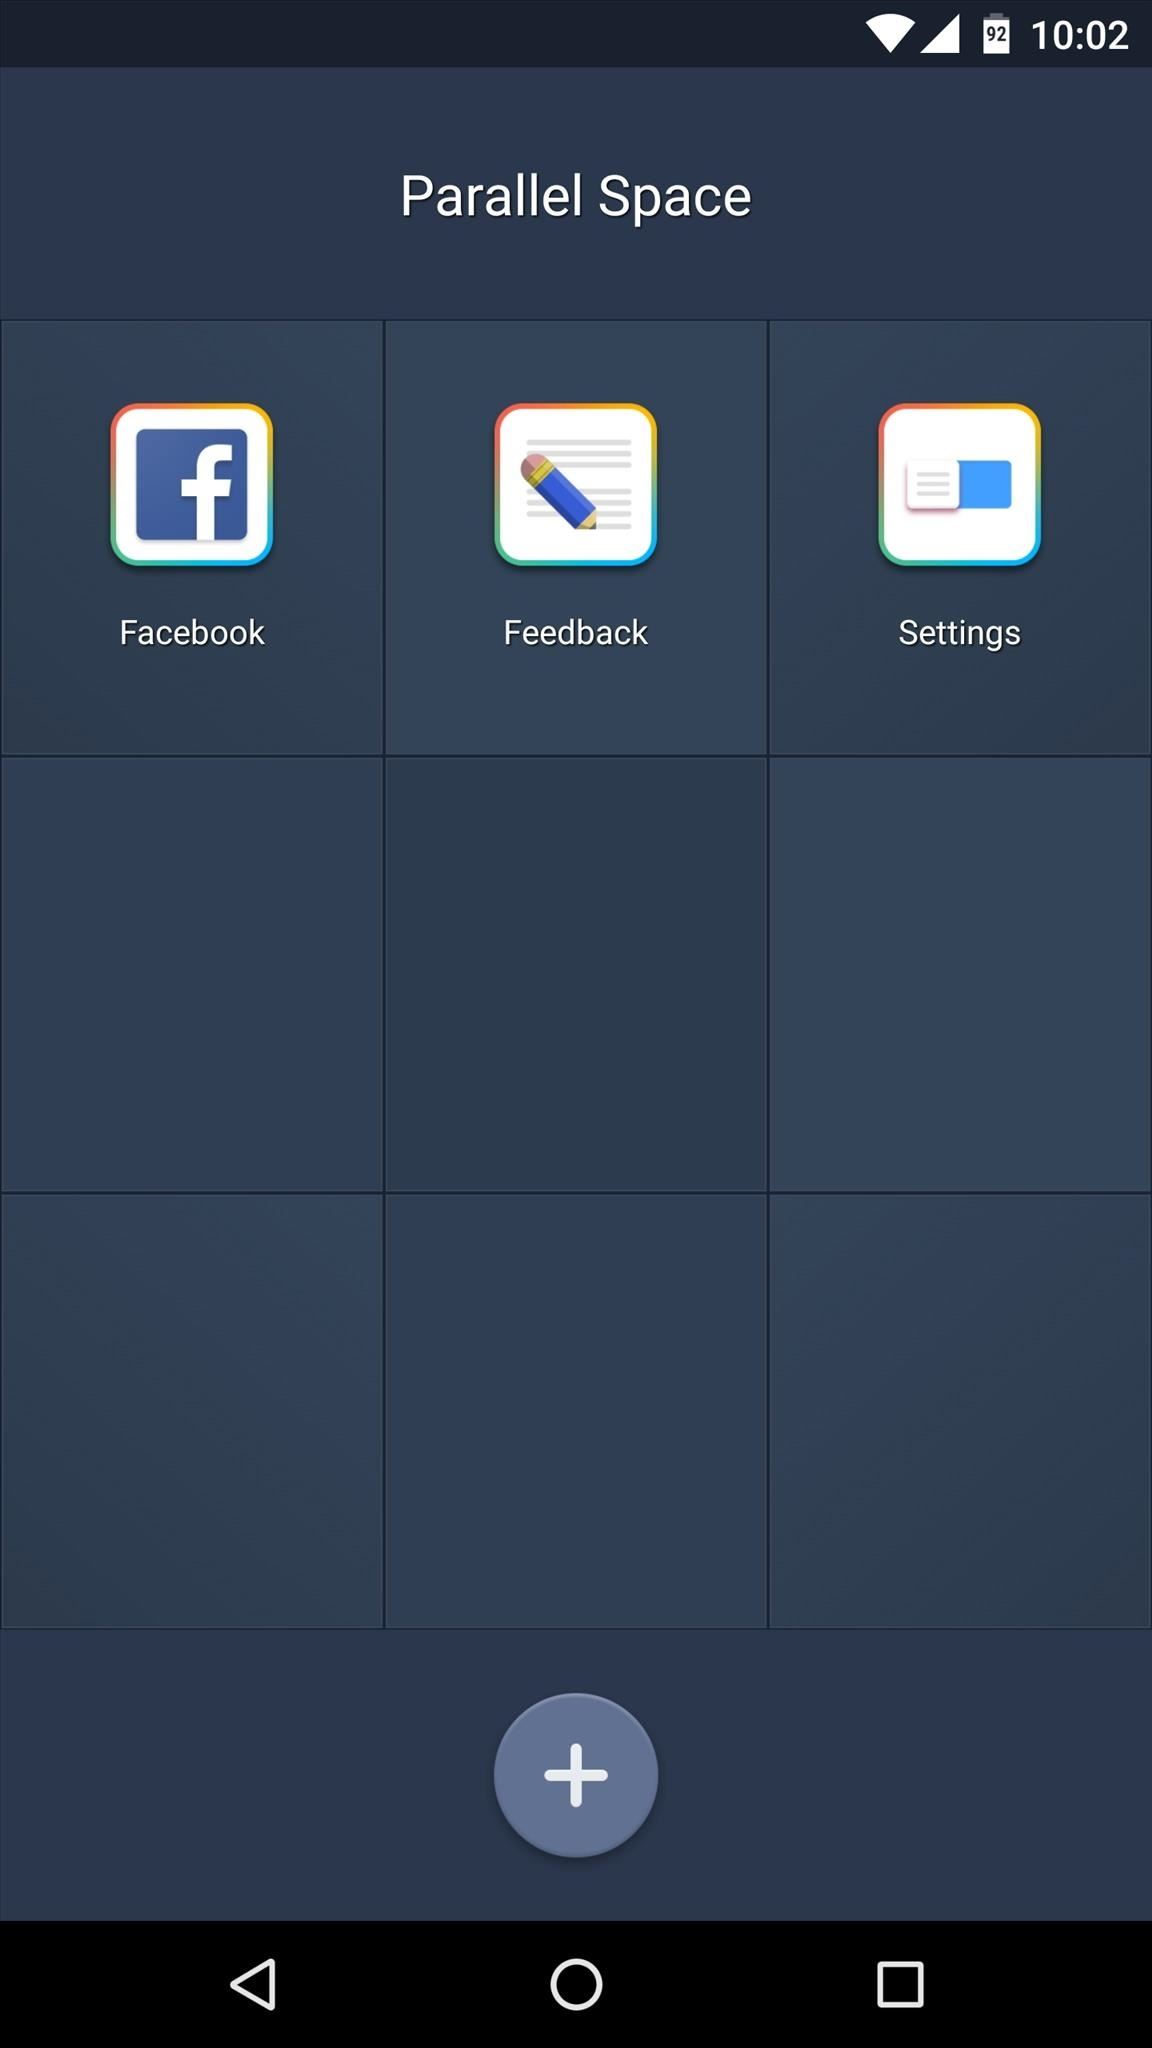 Make Copies of Your Apps to Stay Logged into Multiple Accounts at Once